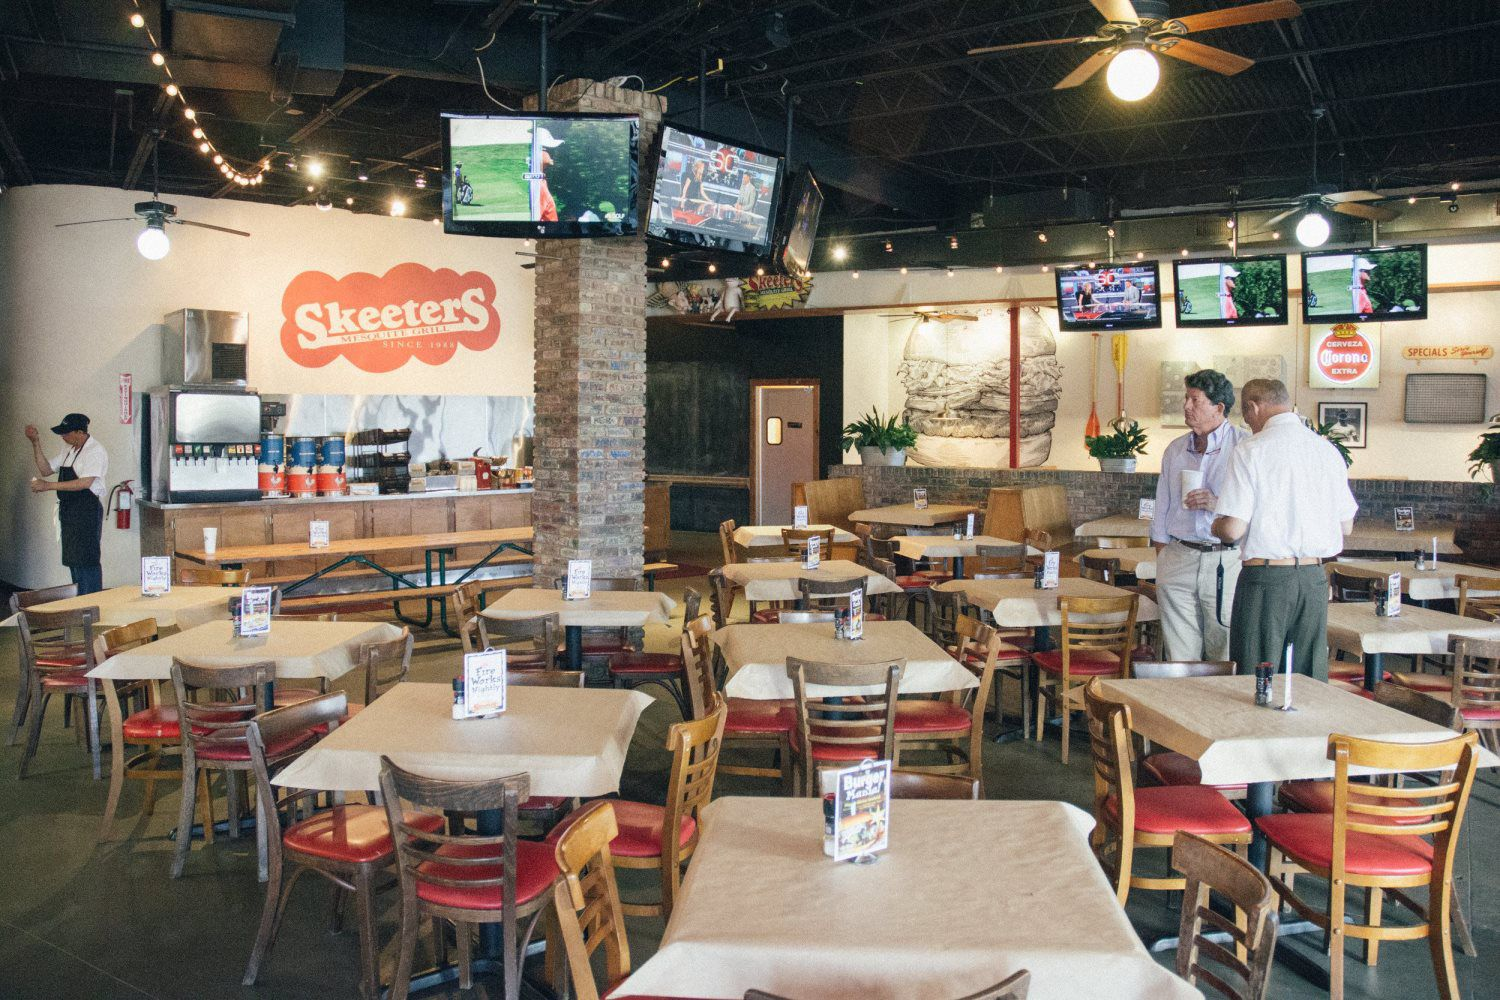 Home Skeeters Mesquite Grill